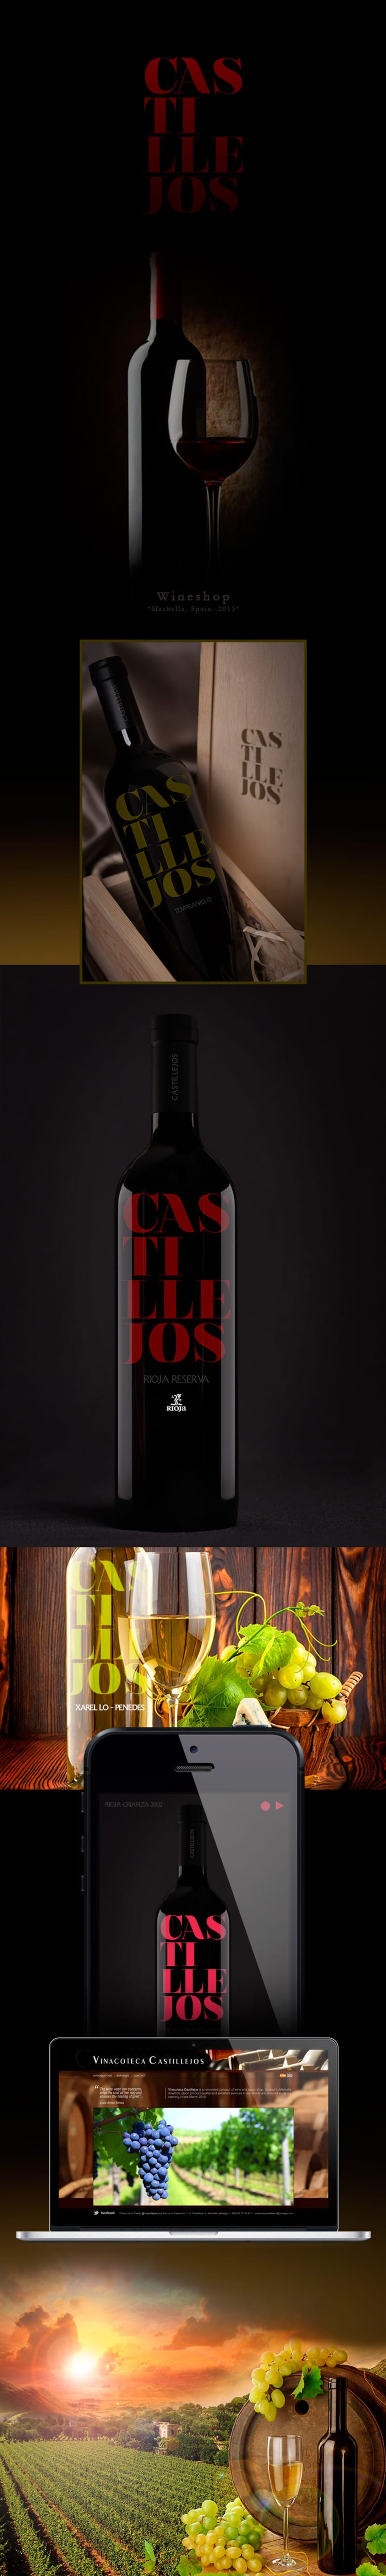 Castillejos Wineshop 1